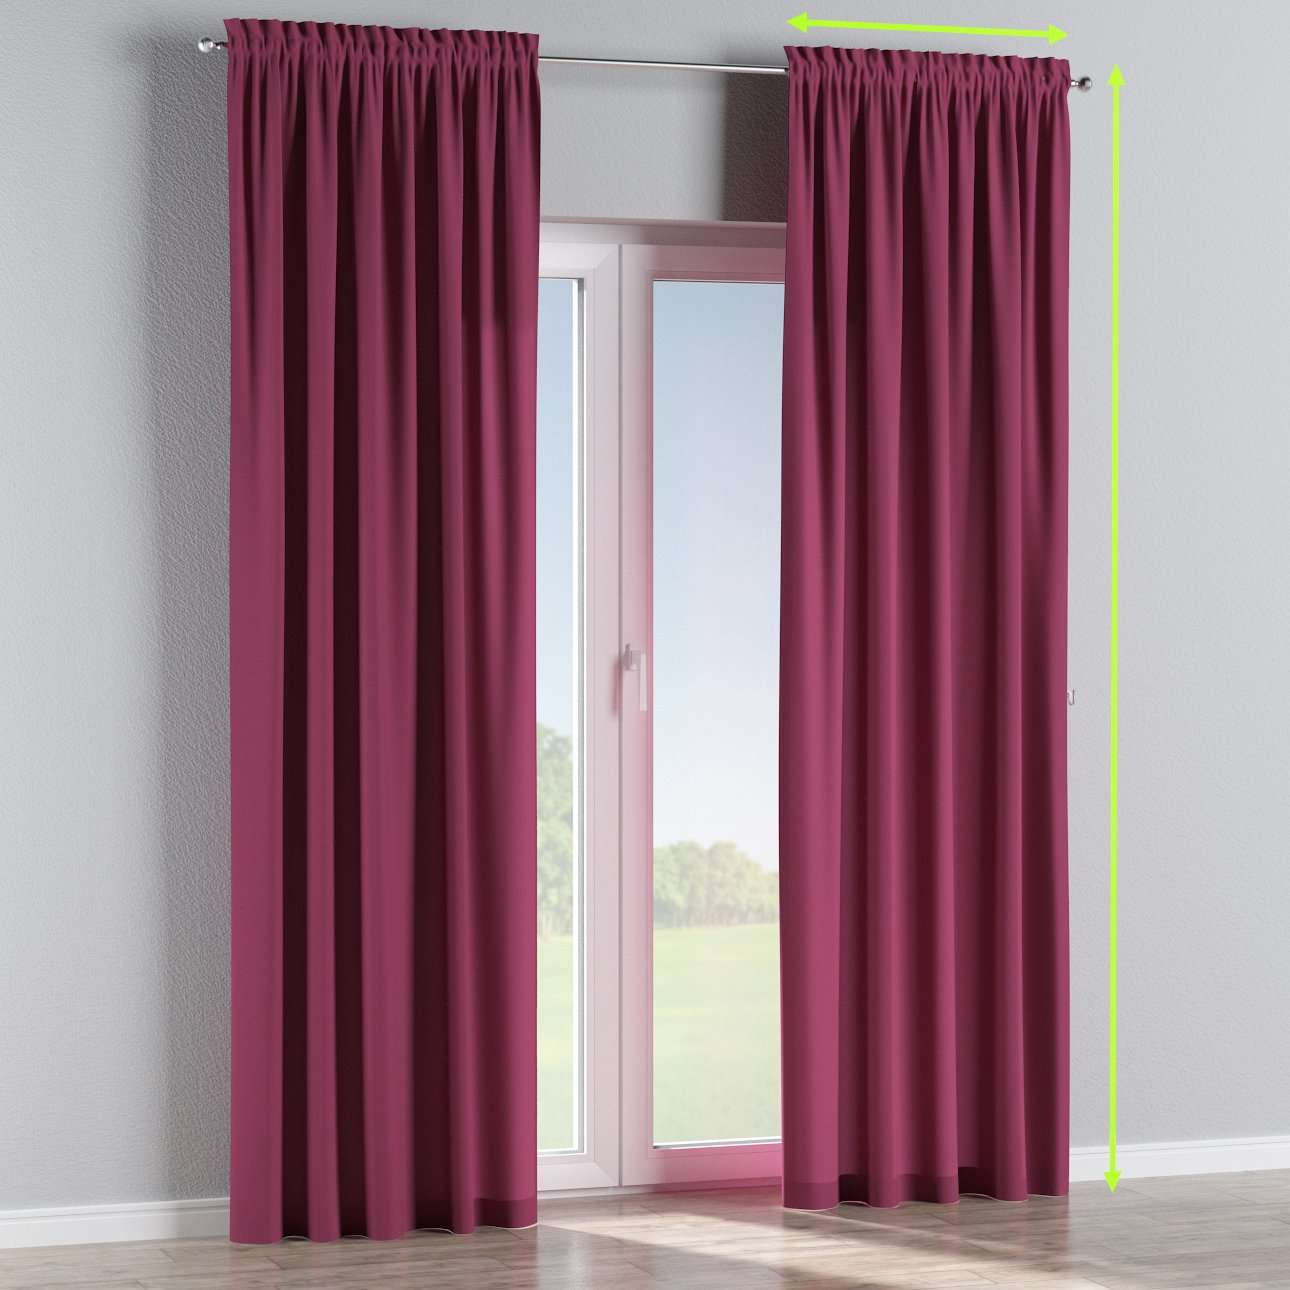 Slot and frill lined curtains in collection Cotton Panama, fabric: 702-32